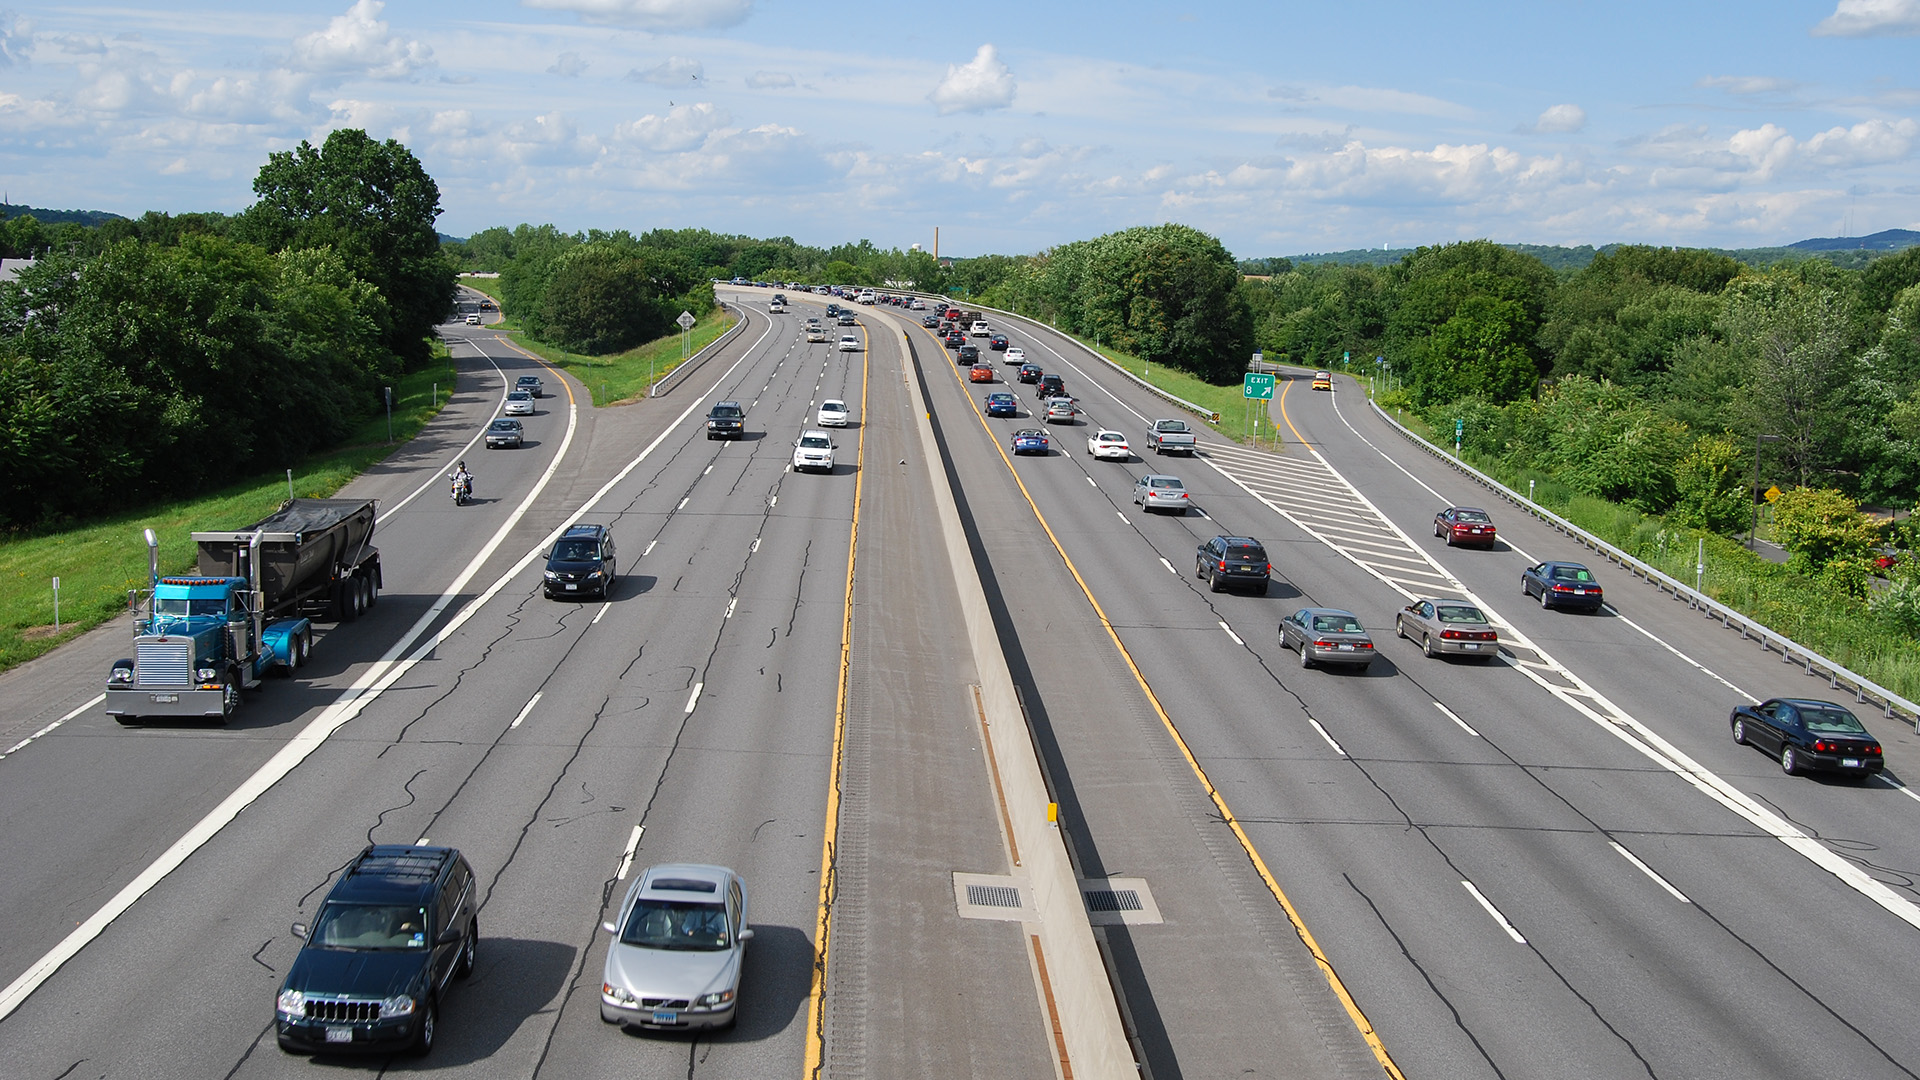 Traffic Transportation Engineering : American society of highway engineers